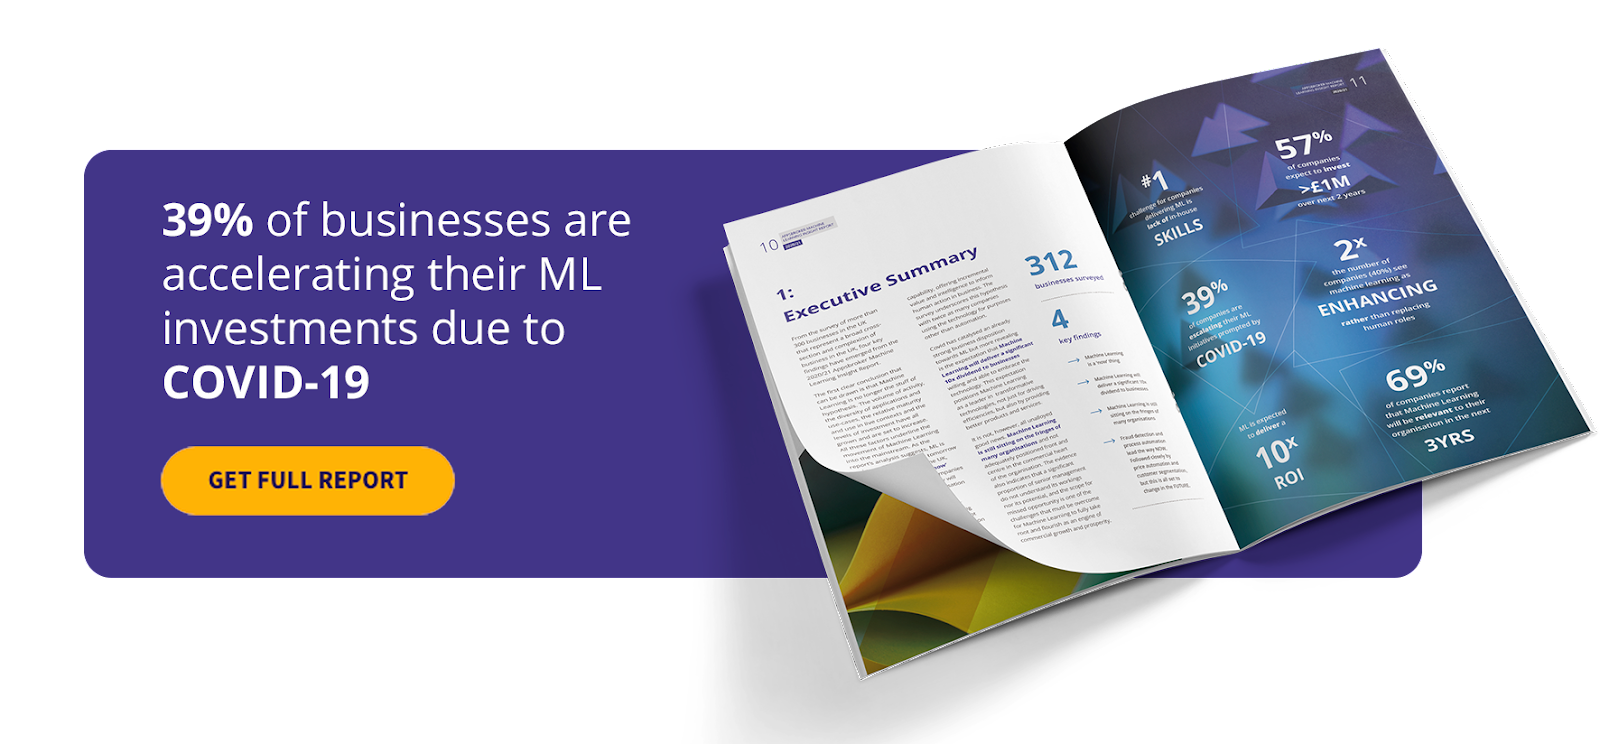 Appsbroker 2020 Machine Learning Insight Report